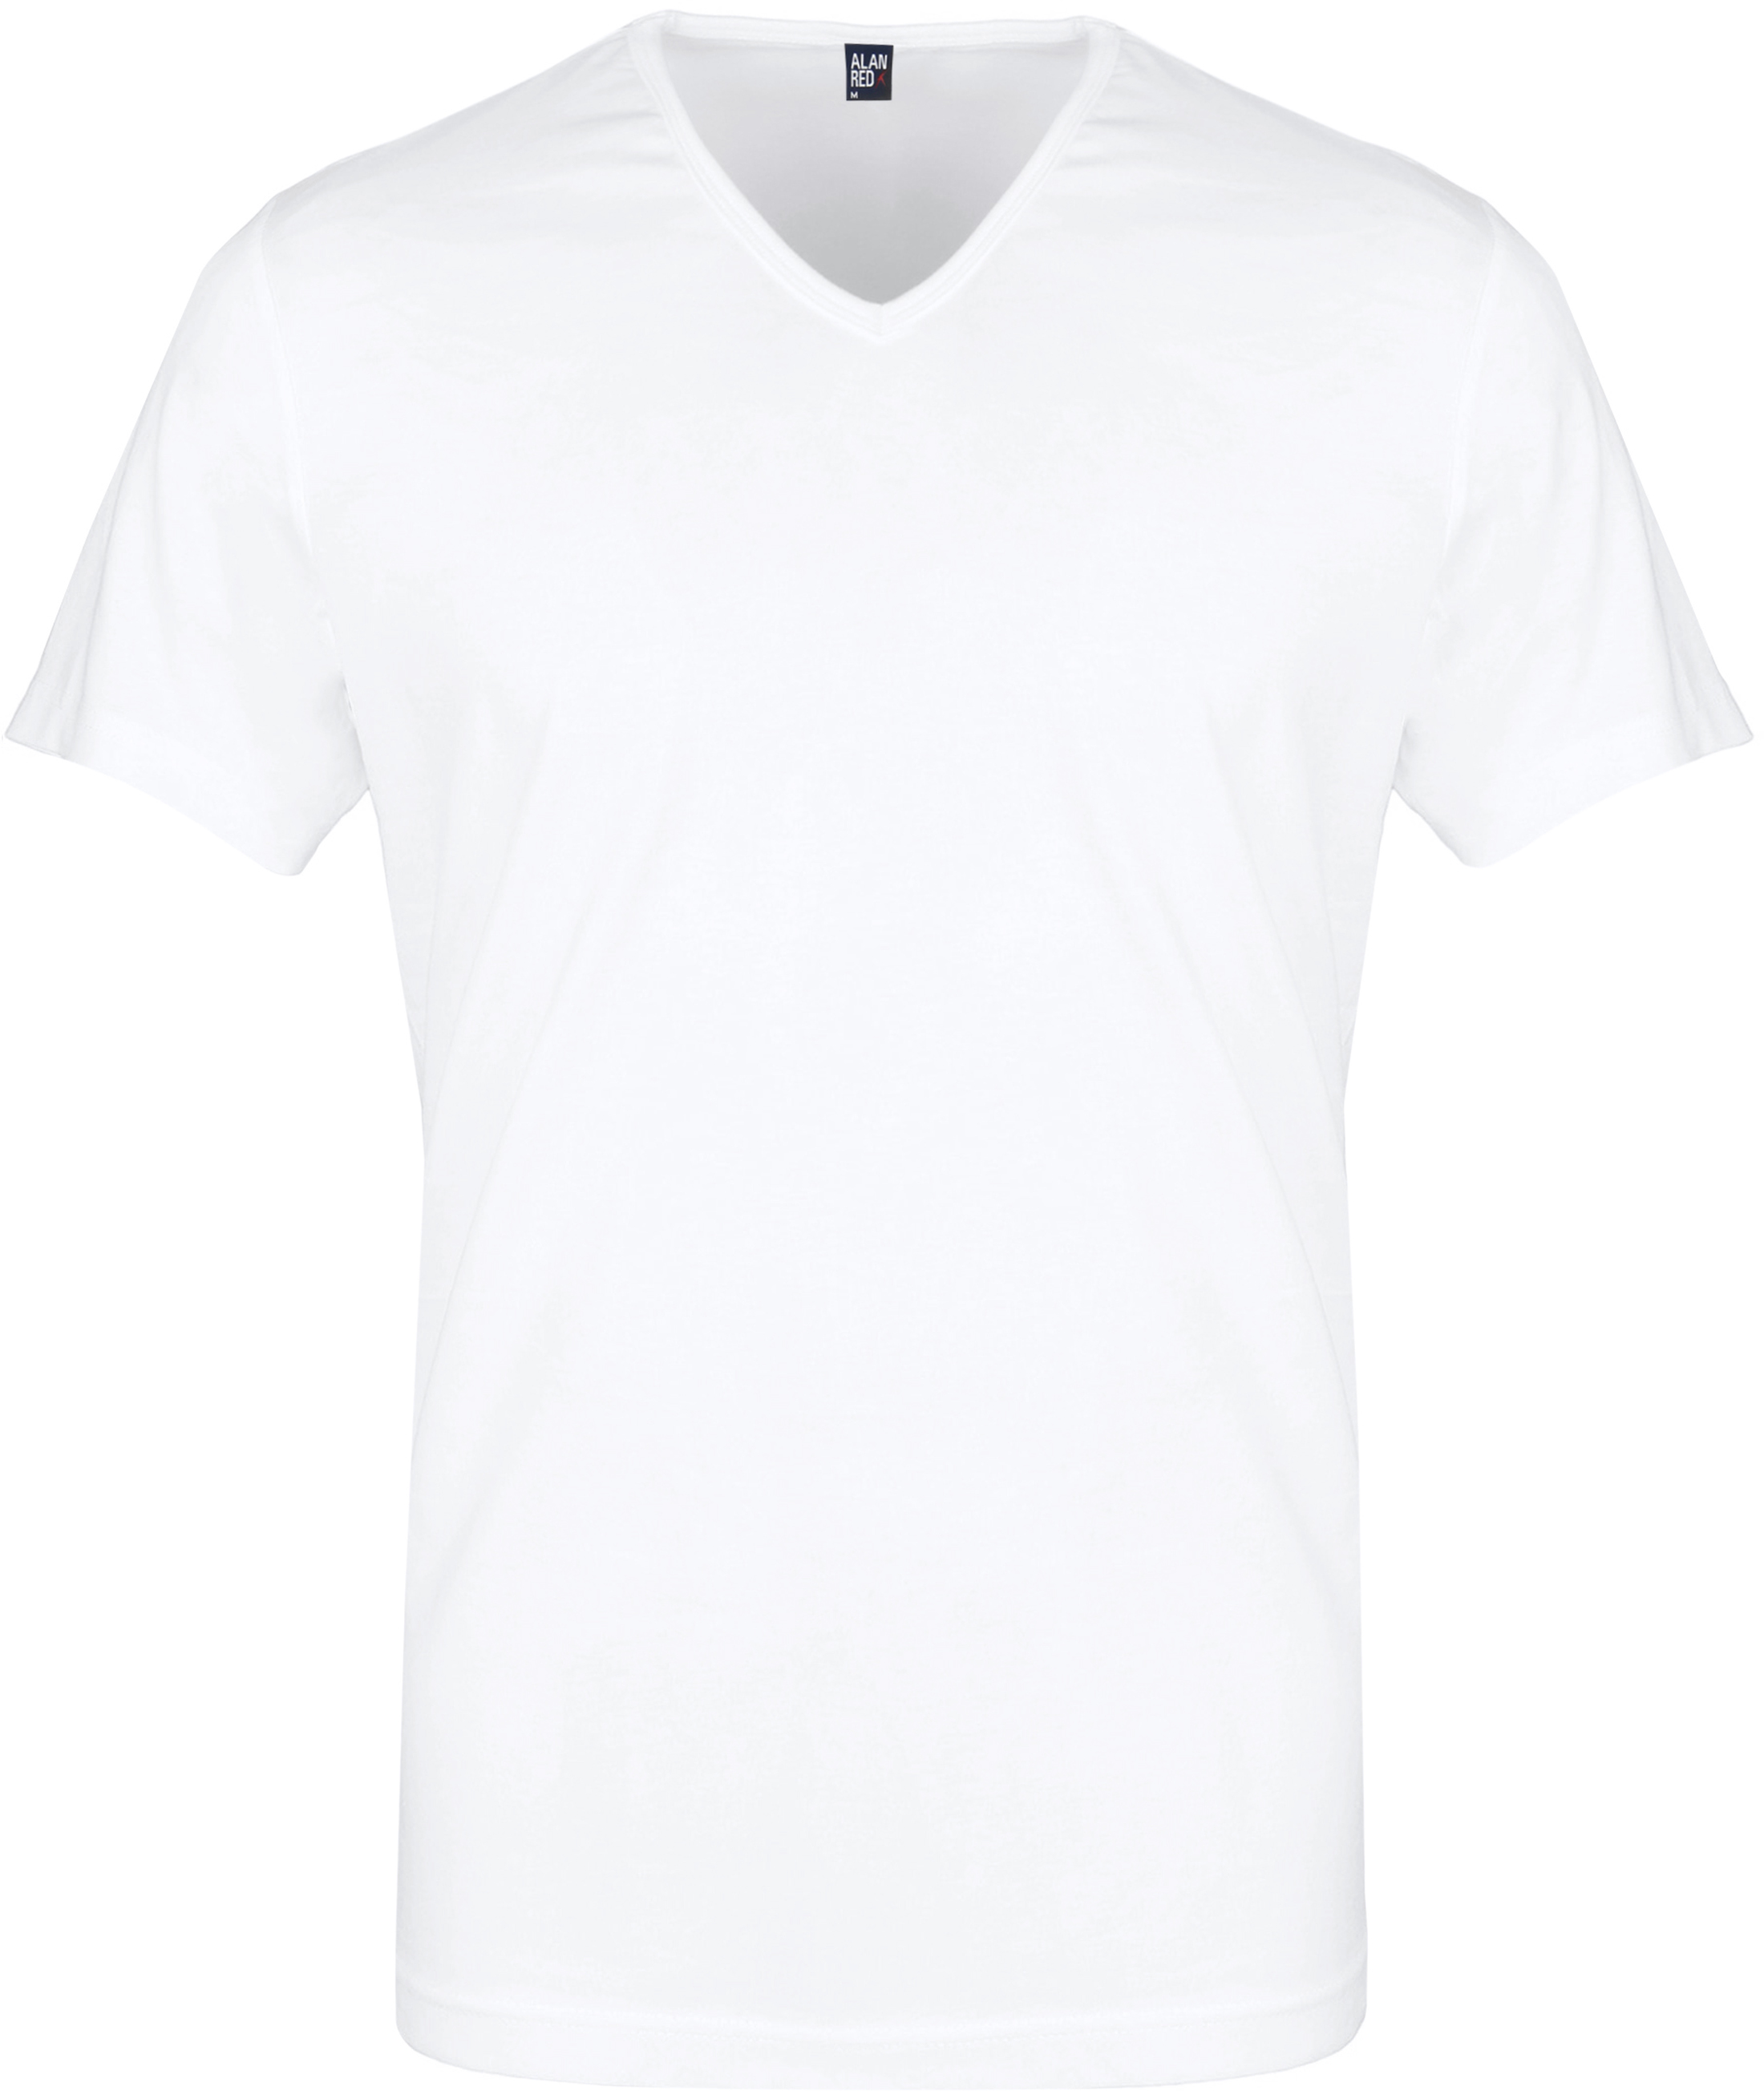 Alan Red Vermont T-Shirt V-Neck White (2Pack) foto 1